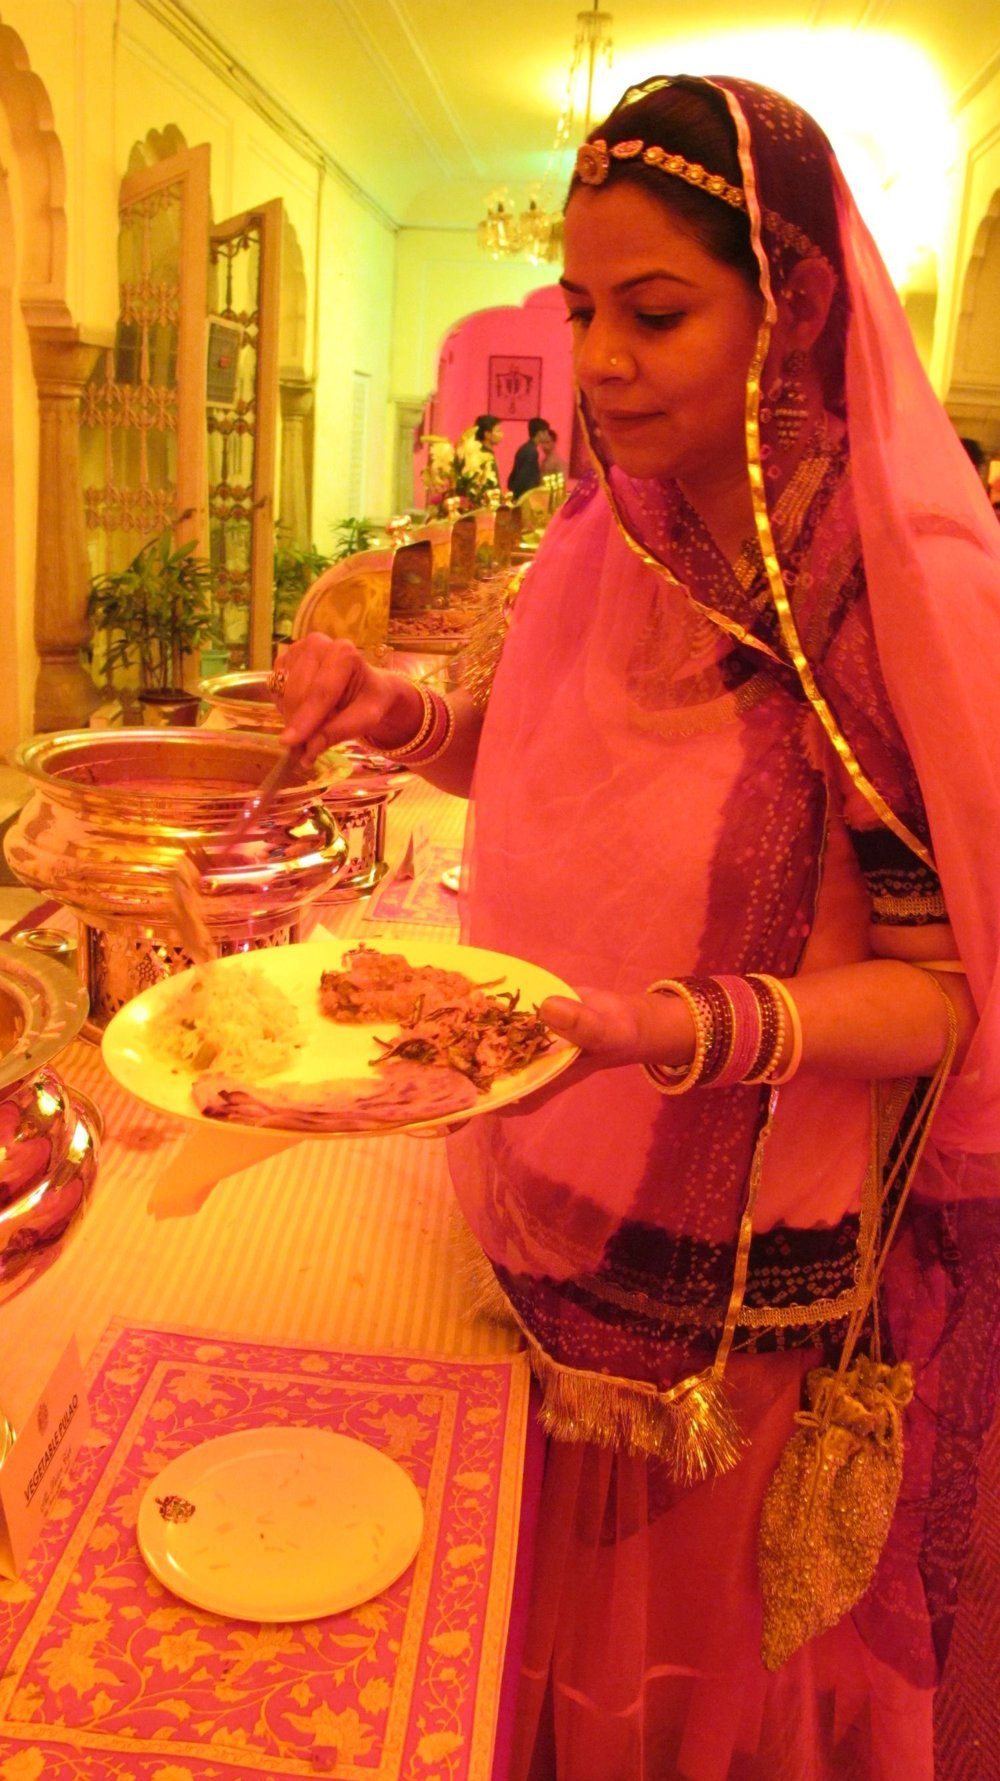 City palace of Jaipur   Royal family   Private party   Time to Diner with silver dishes   ©sandrine cohen